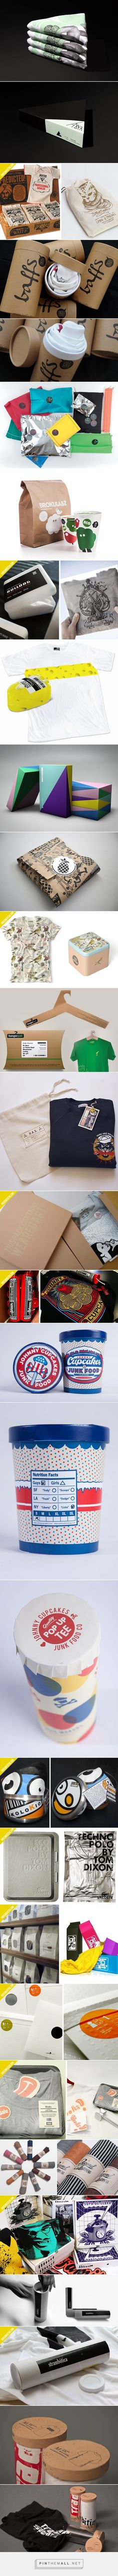 25 Cool T-shirt Packaging Design Examples – Printsome Blog